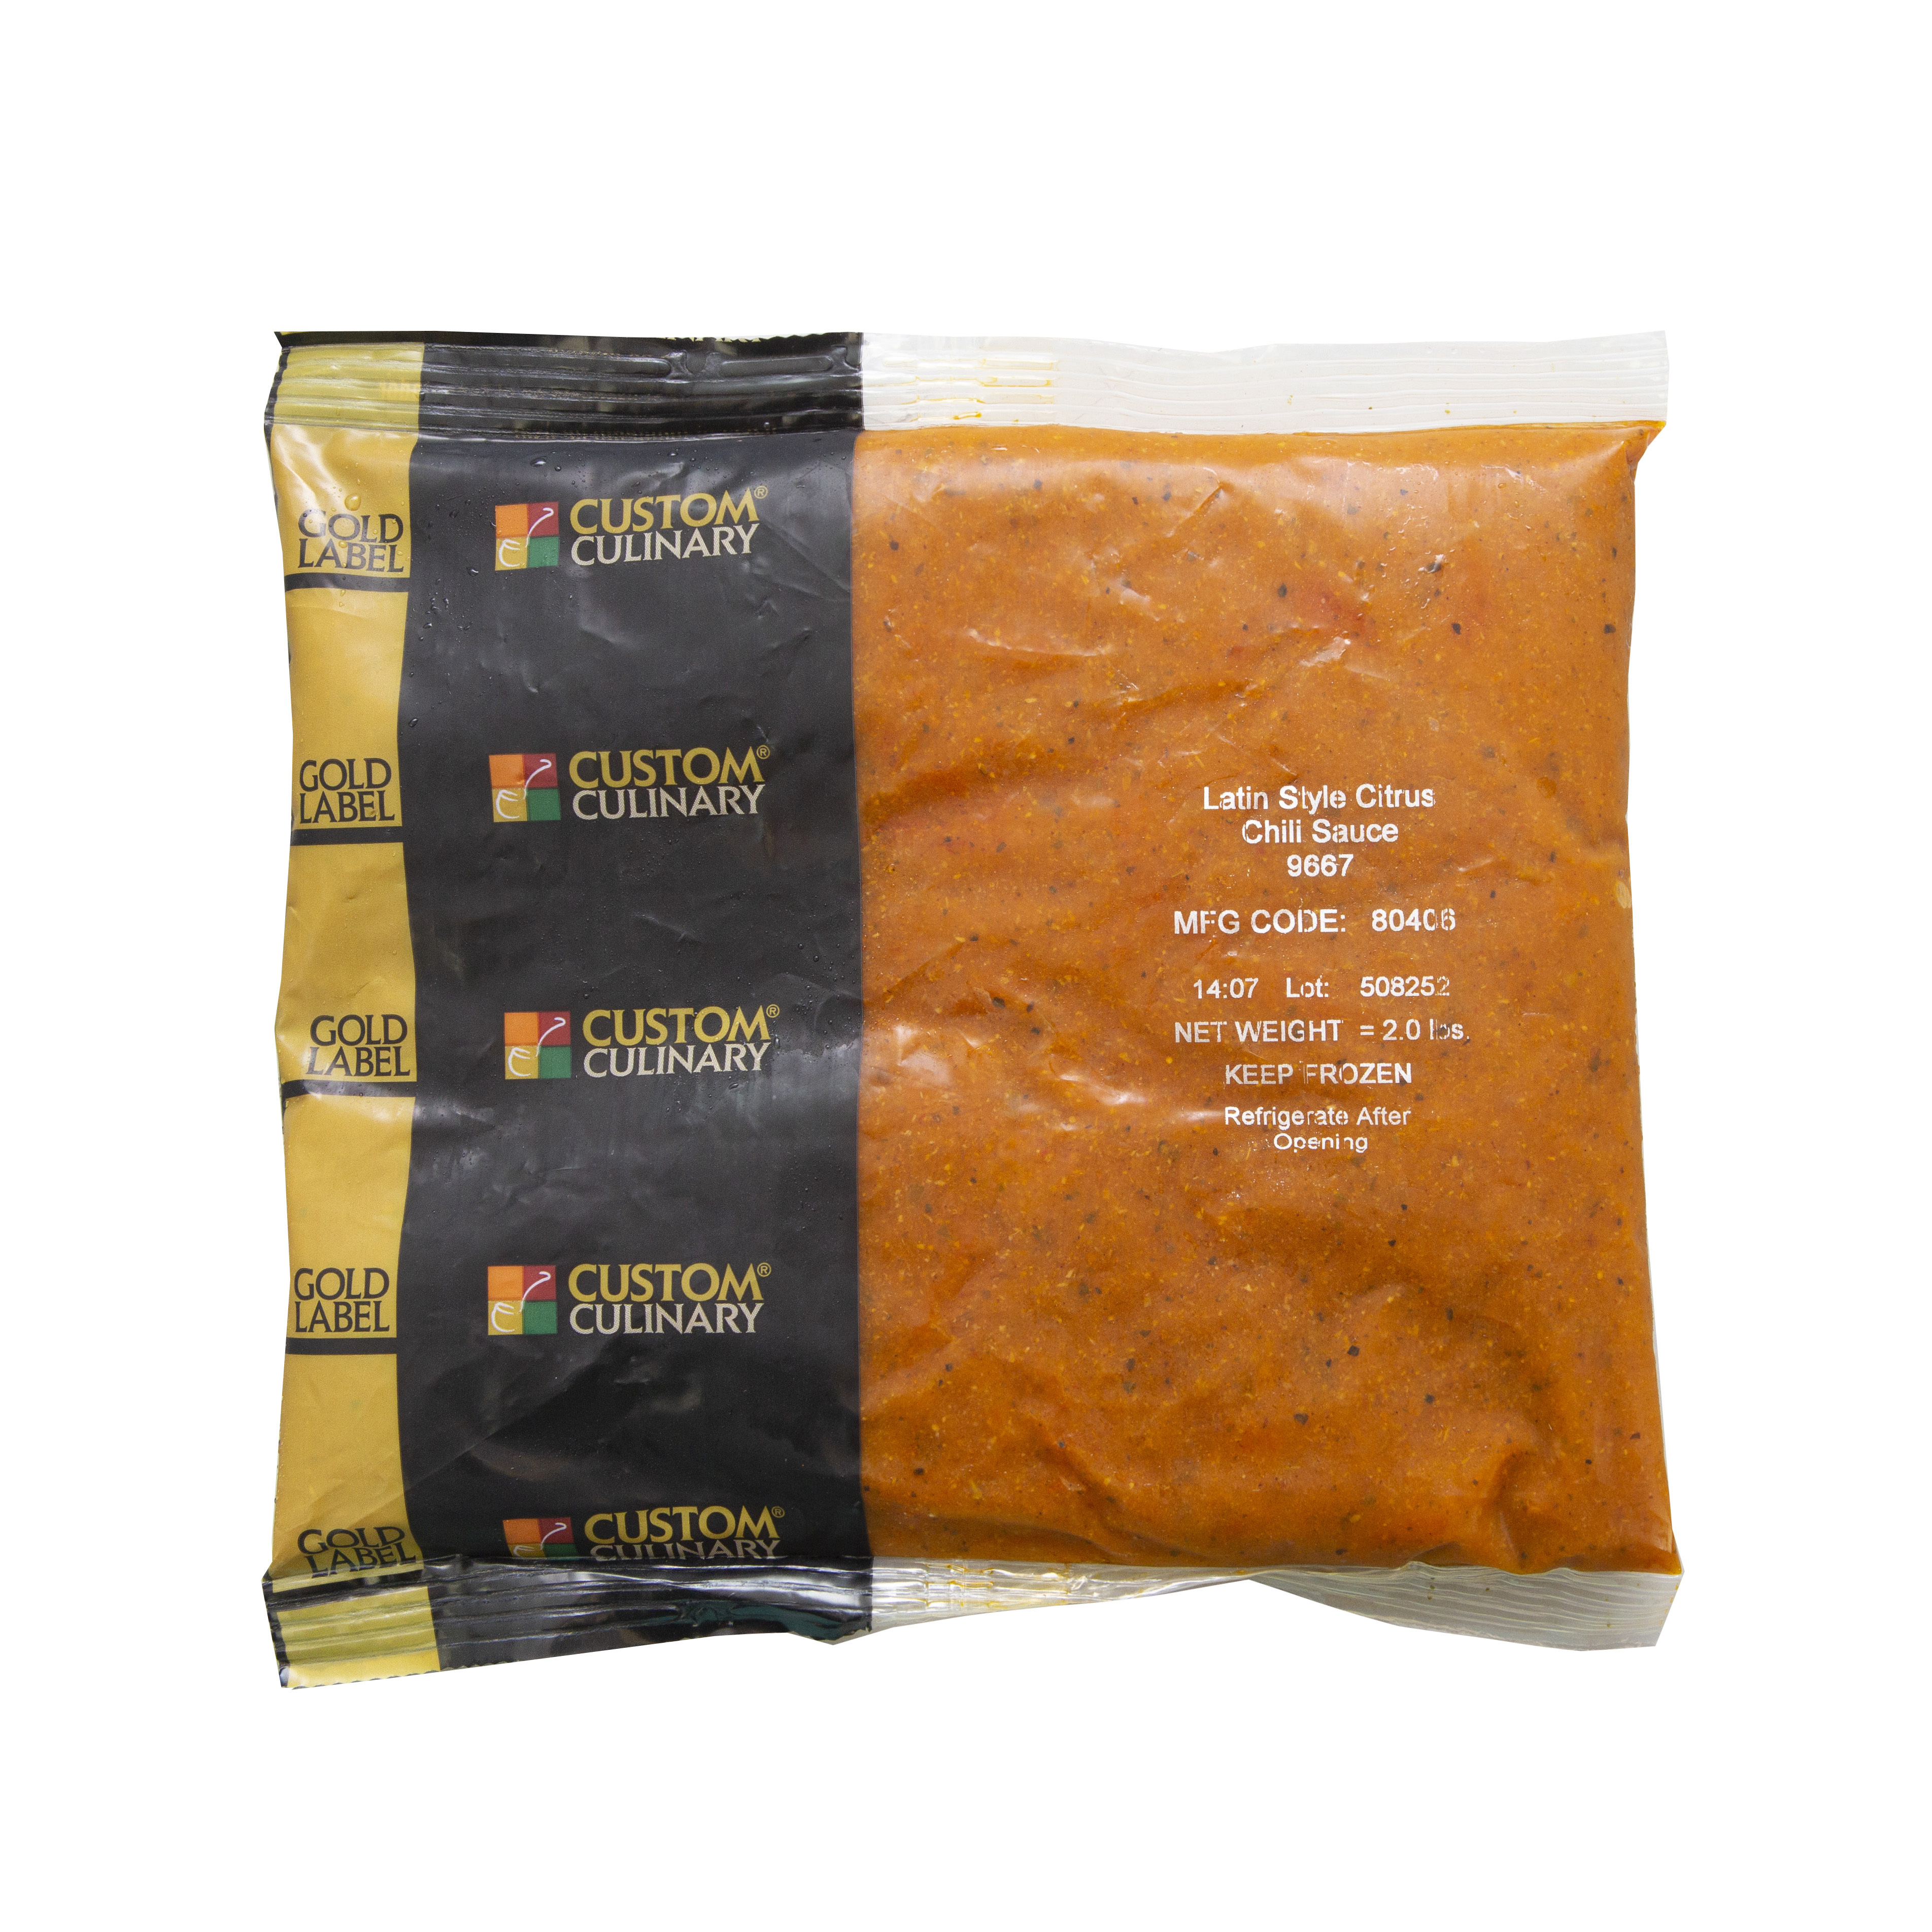 9667 - GOLD LABEL Ready-To-Use Frozen Latin -Style Citrus Chili Sauce